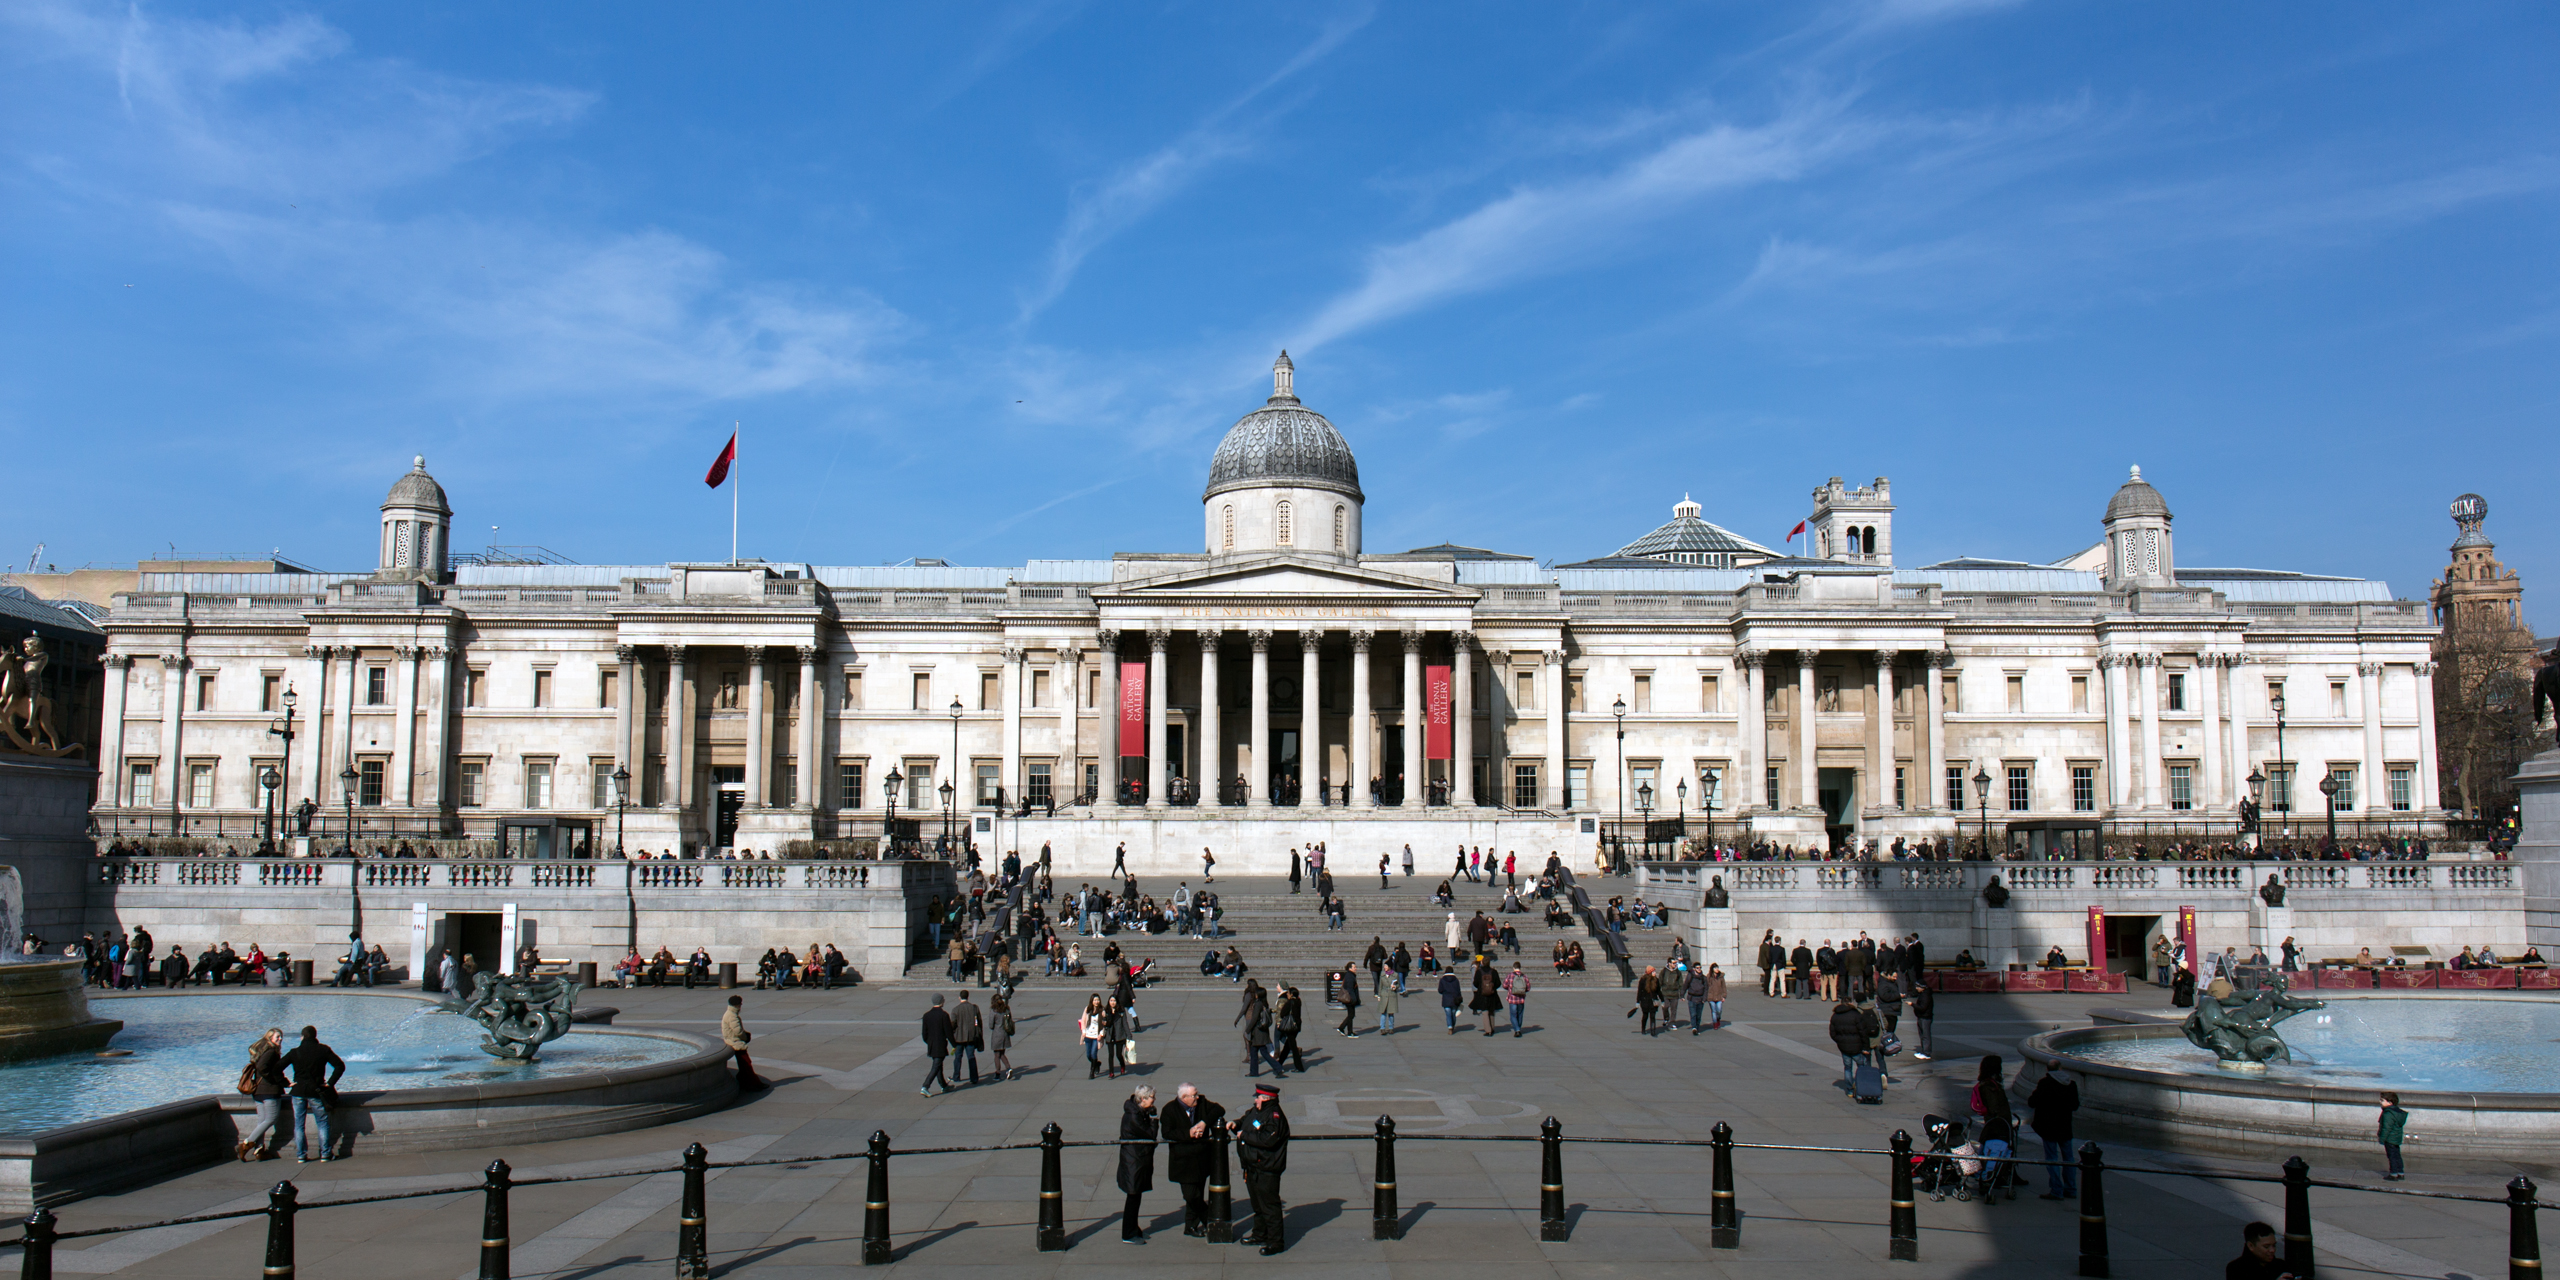 London's National Gallery as seen from Trafalgar Square